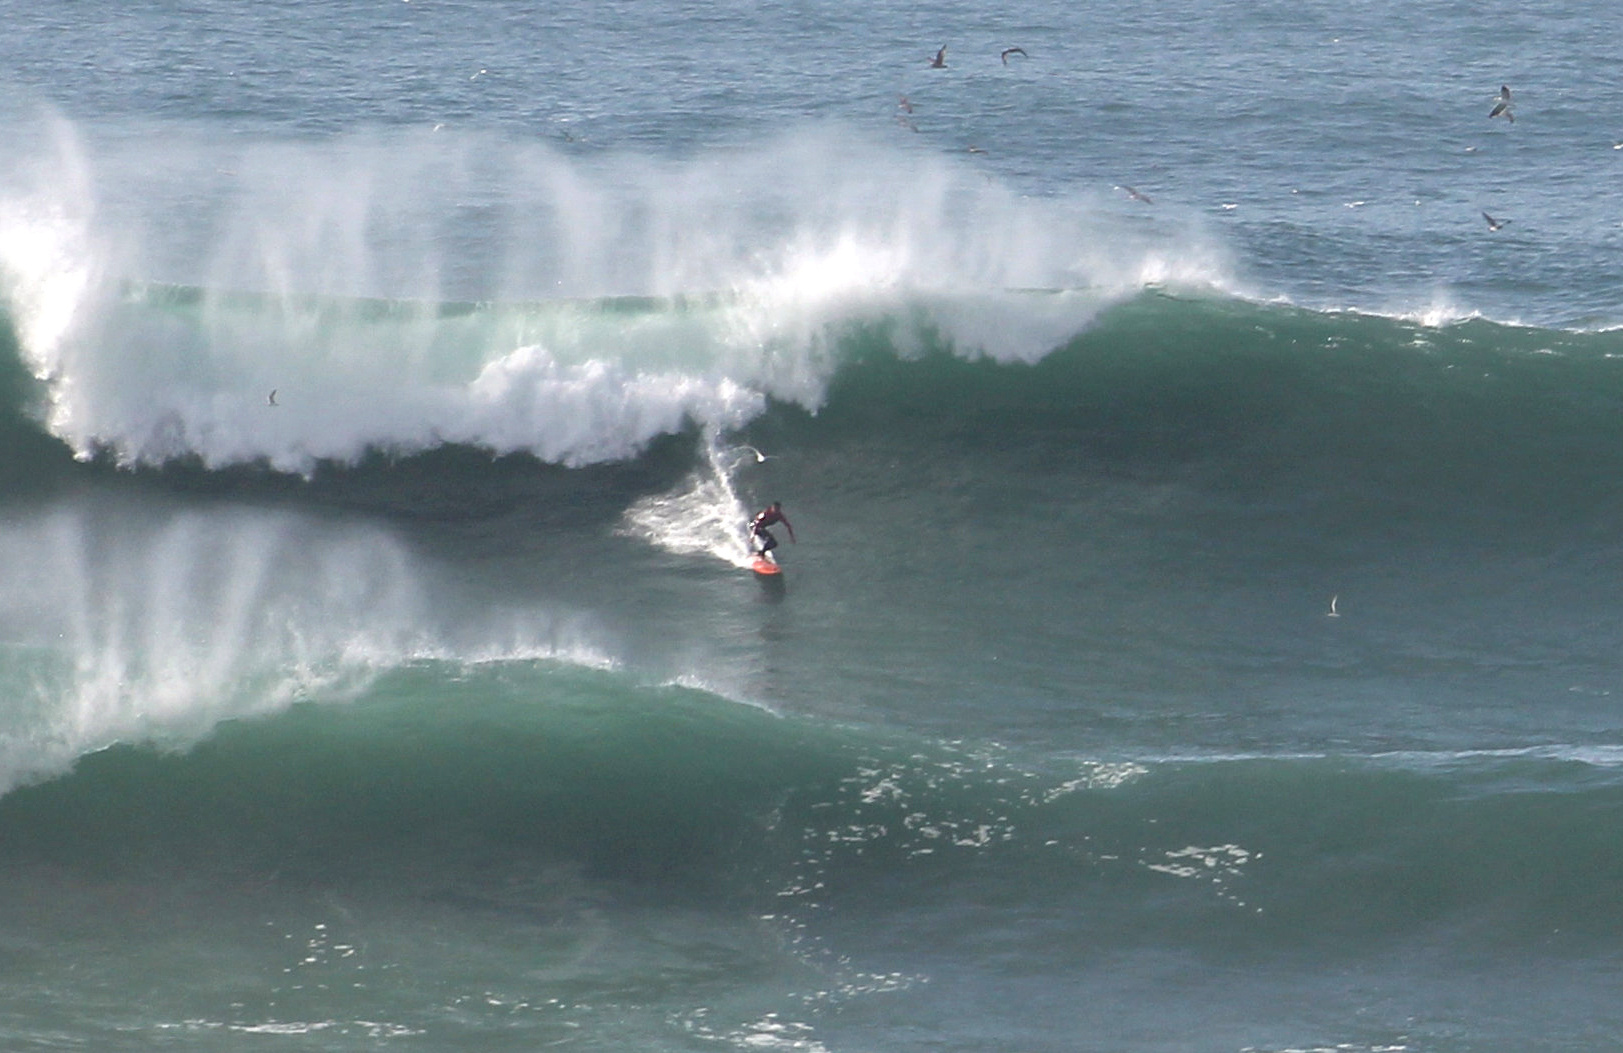 Professional Surfer Takes To The Waves To Ride Uk S Biggest